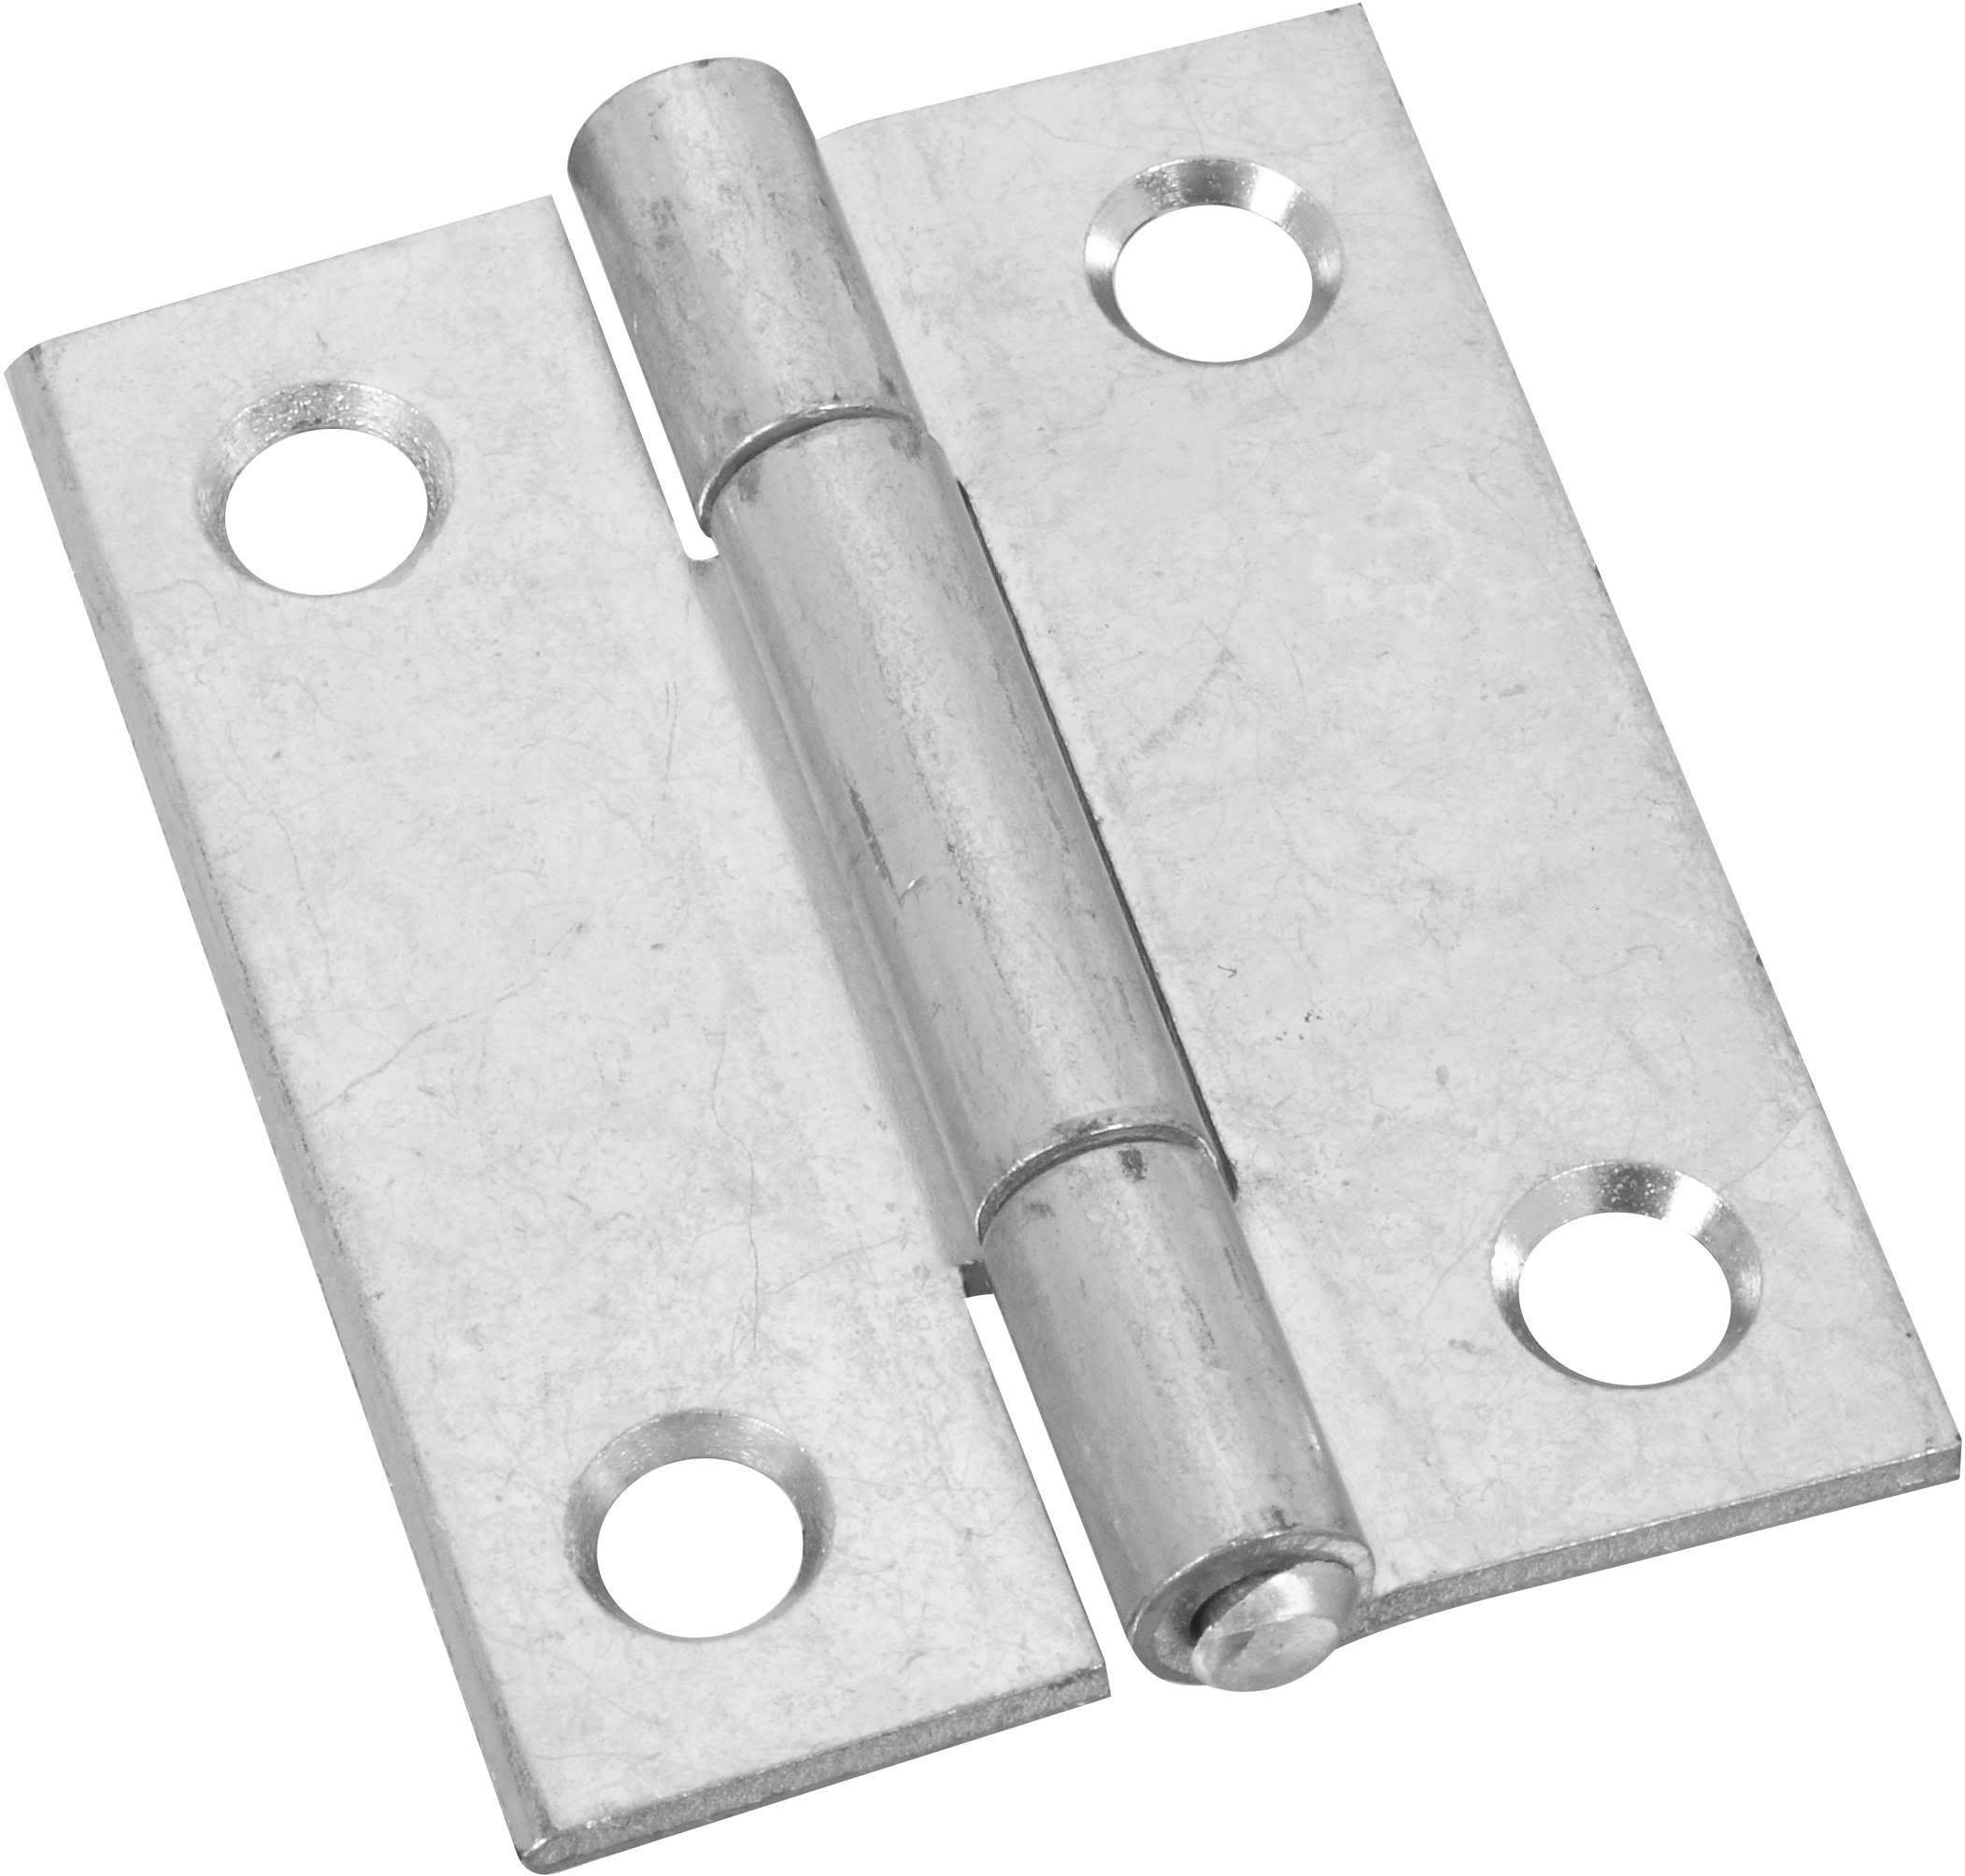 National Hardware Hinge Non-Removable Pin Hinge - 2''